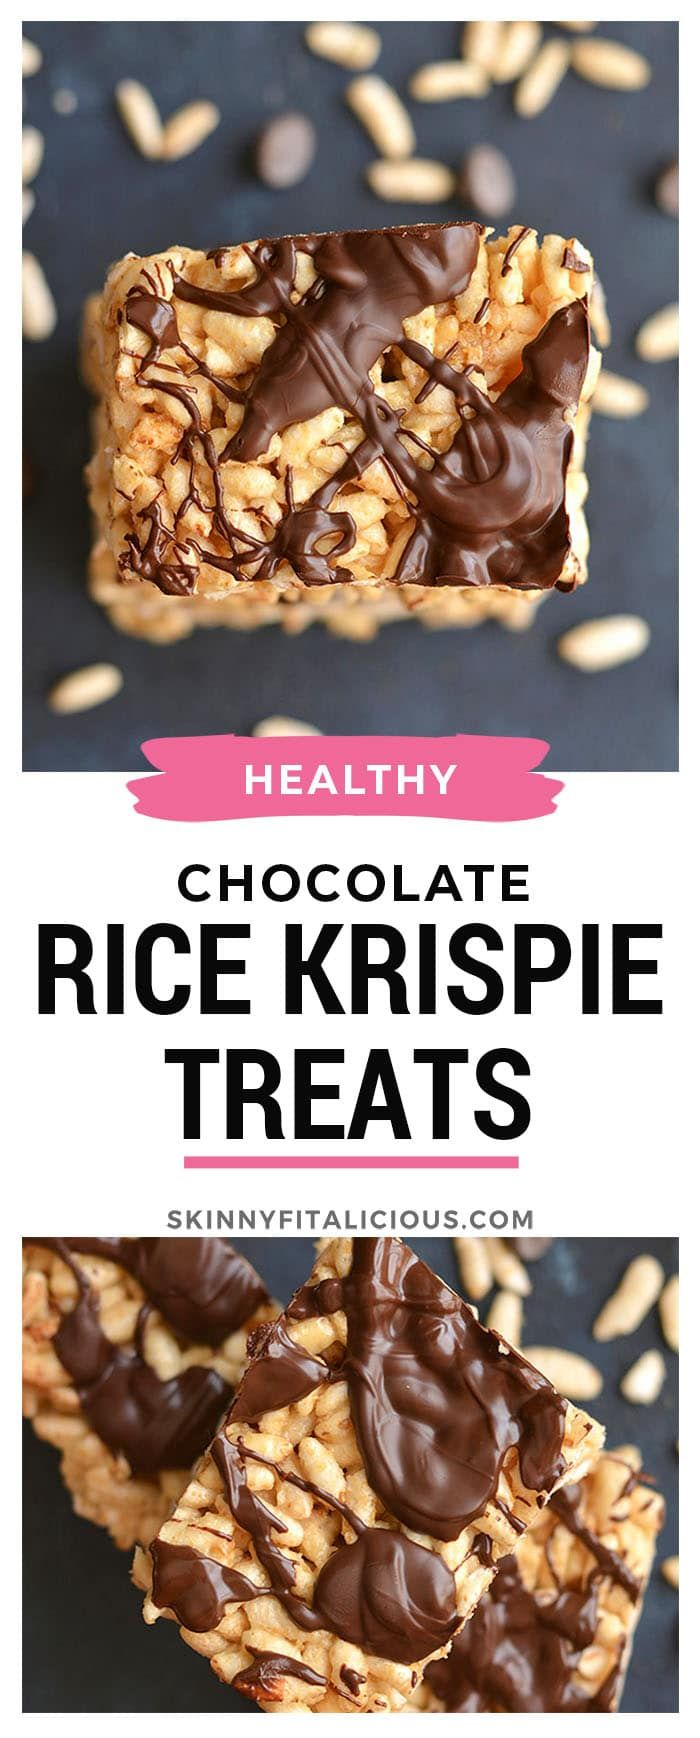 Healthy Rice Krispie Treats made better for you! #dairyfree #glutenfree #rice #krispie #treats #healthy #lowcalorie #skinnyfitalicious #ricekrispiestreats